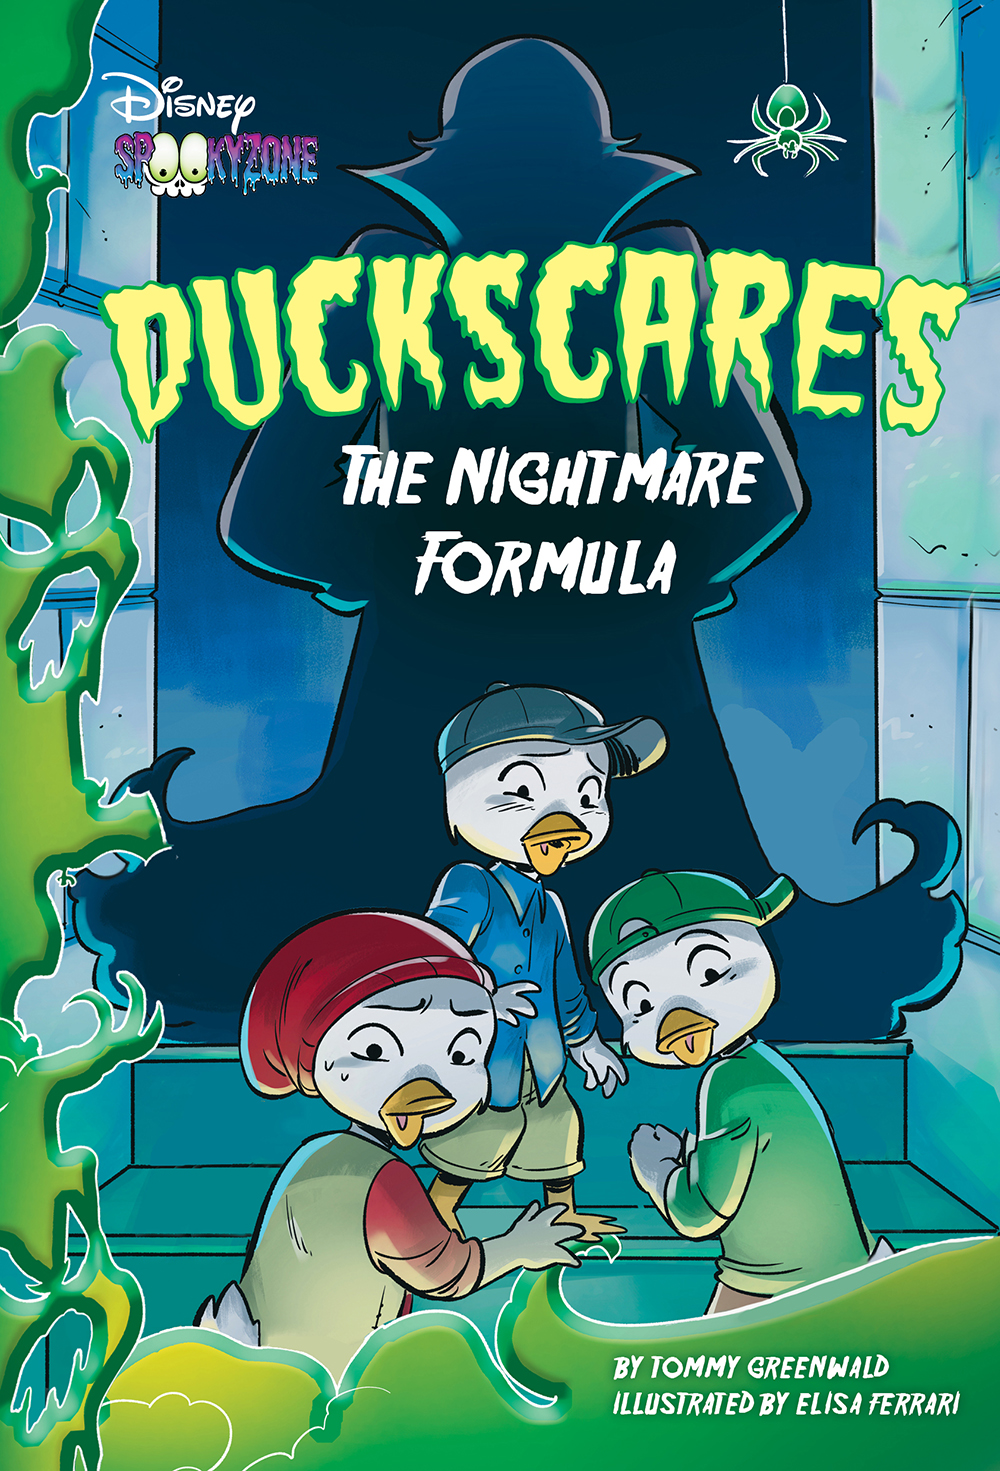 The Nightmare Formula by Tommy Greenwald